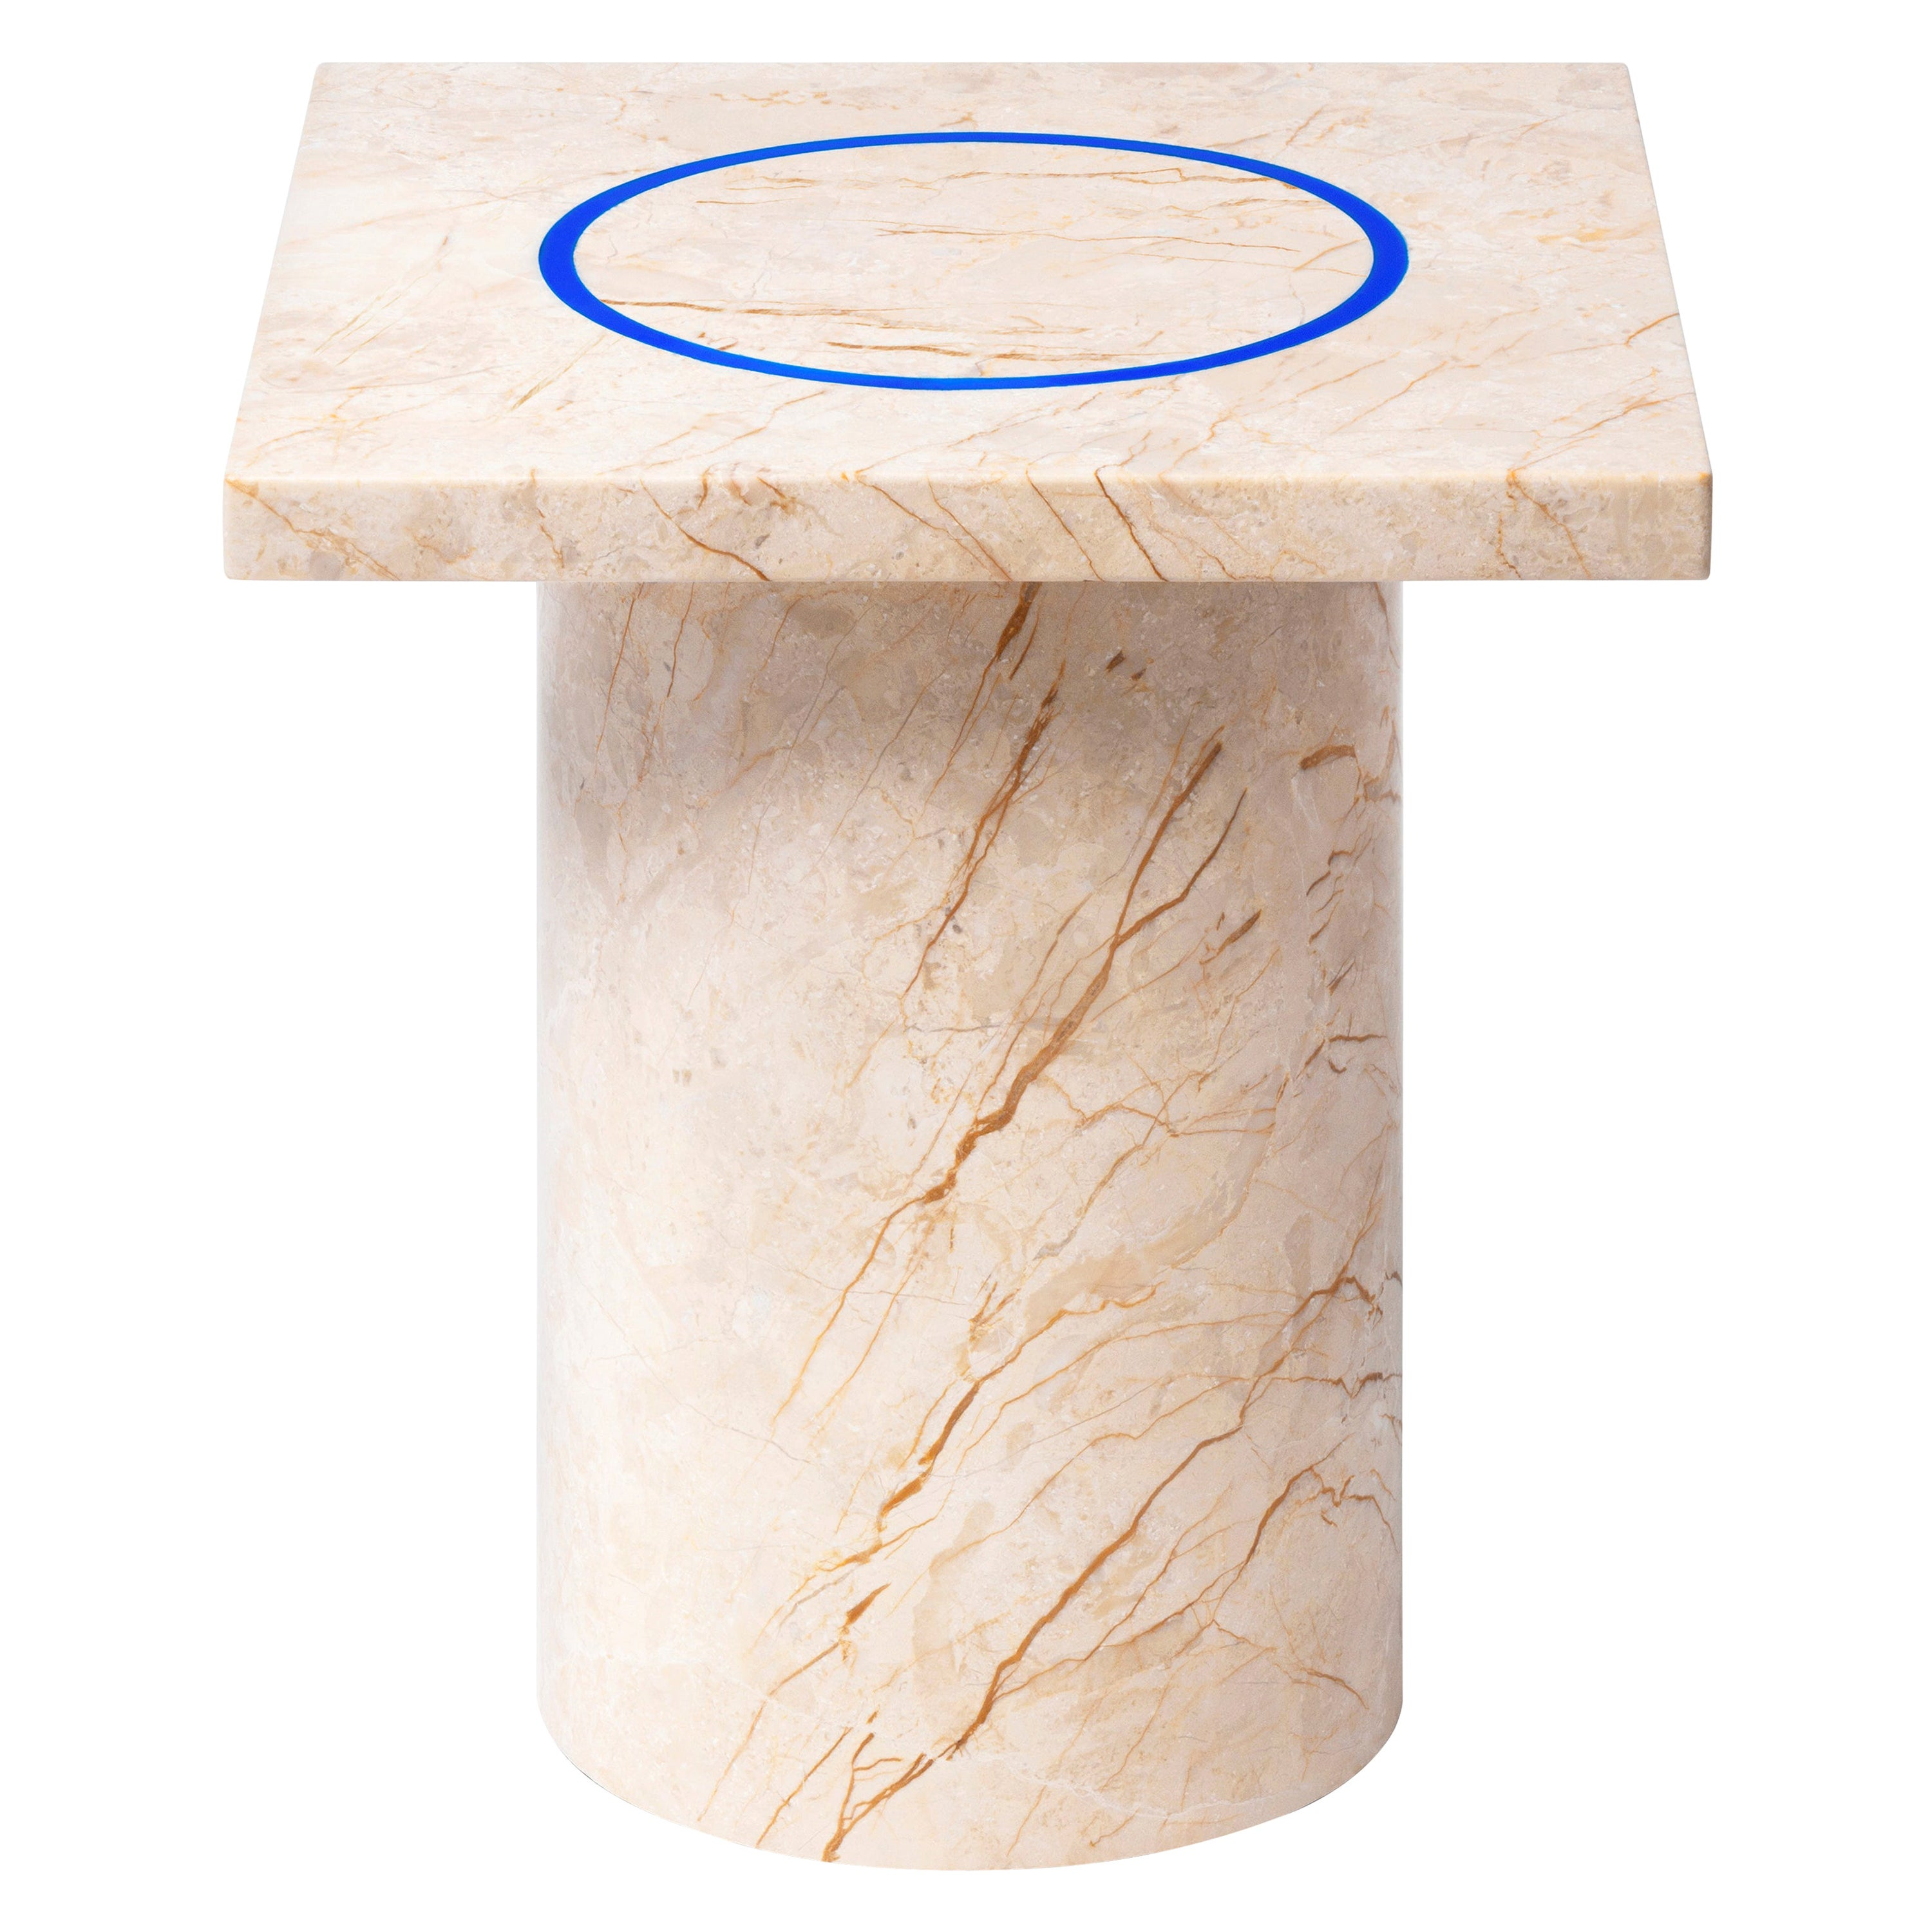 Menes Gold Square Side Table from Dislocation by Studio Buzao